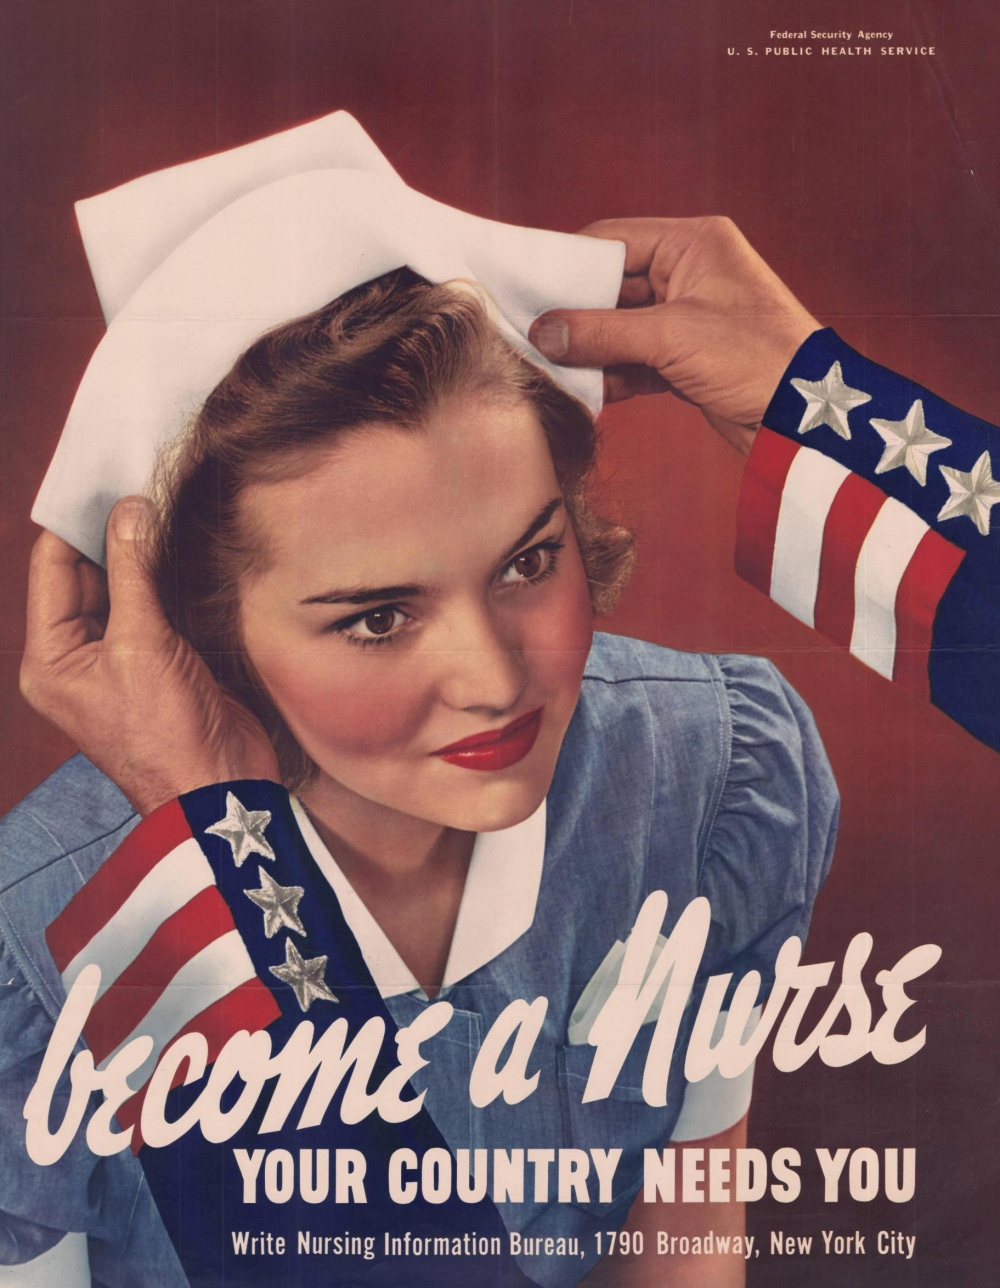 WWII poster encouraging women to become nurses